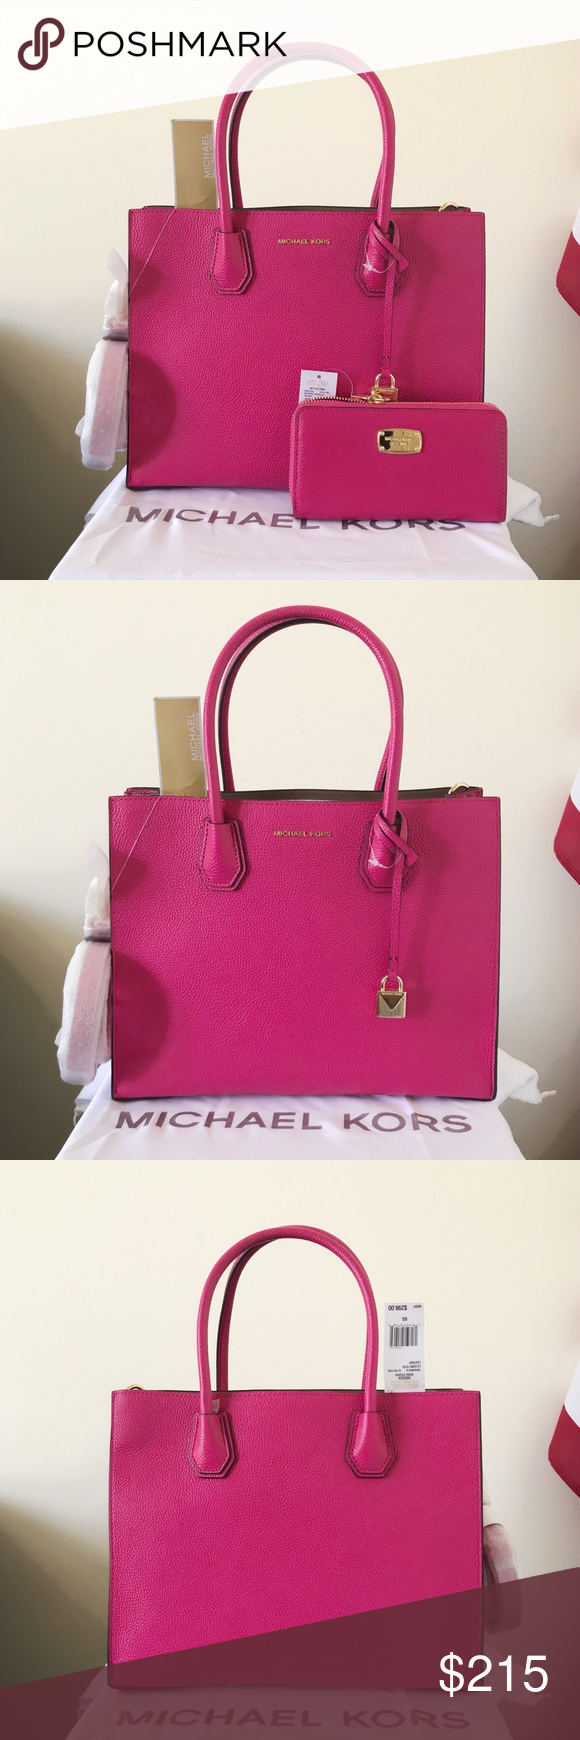 1fbdc95087 NWT Michael Kors Mercer Large Tote Set Gorgeous color! Ultra pink with gold  detailing.